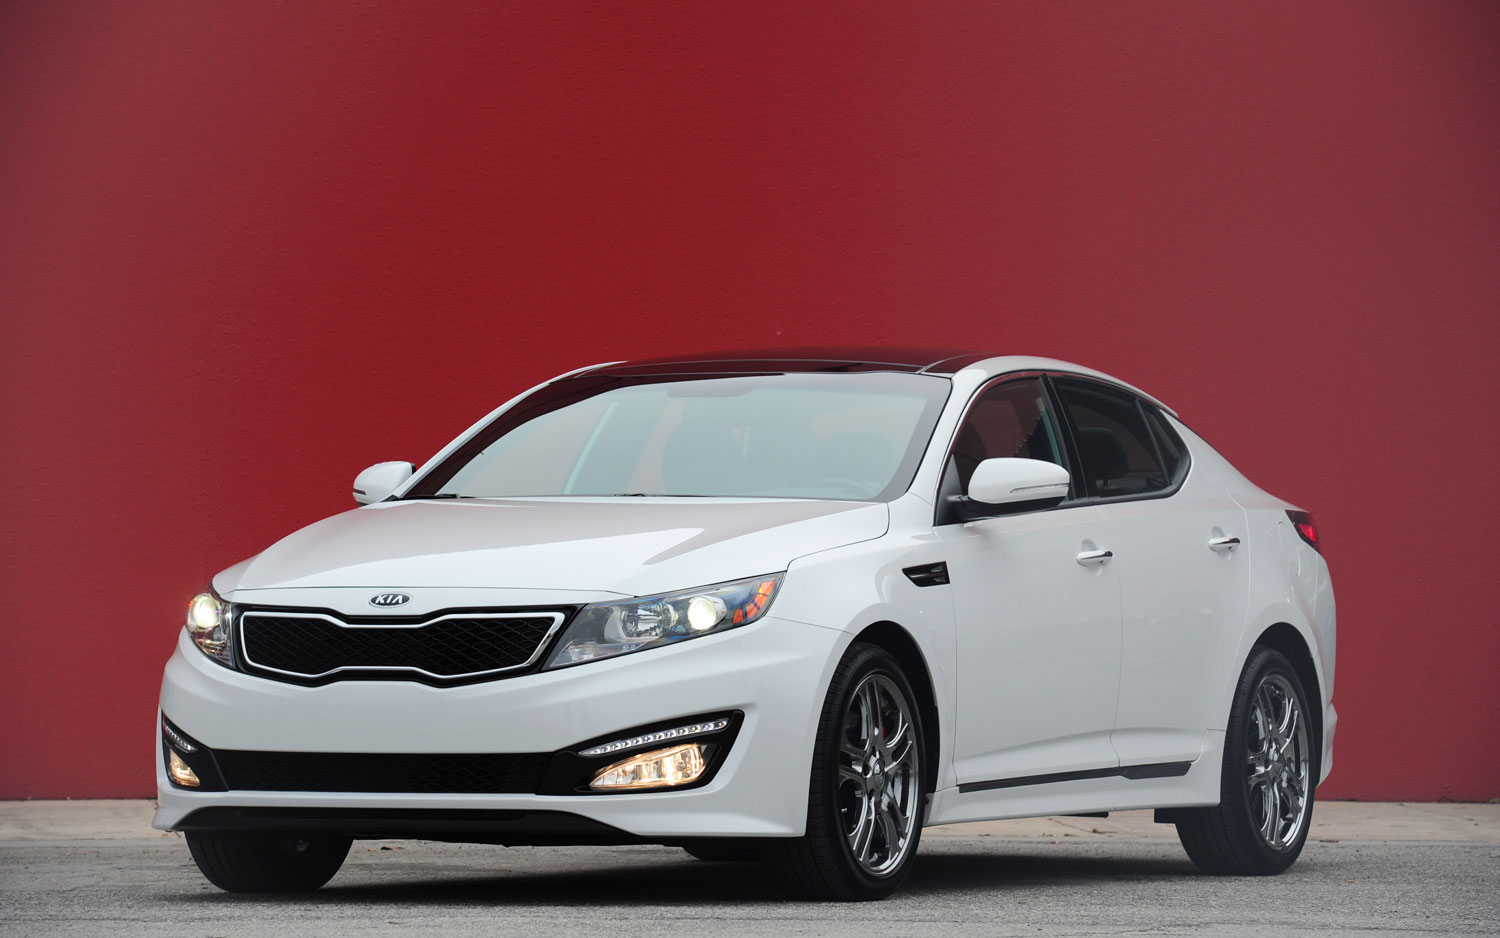 2012 Kia Optima For Sale >> 2013 Kia Optima Limited Priced At 35 275 On Sale Now Motortrend